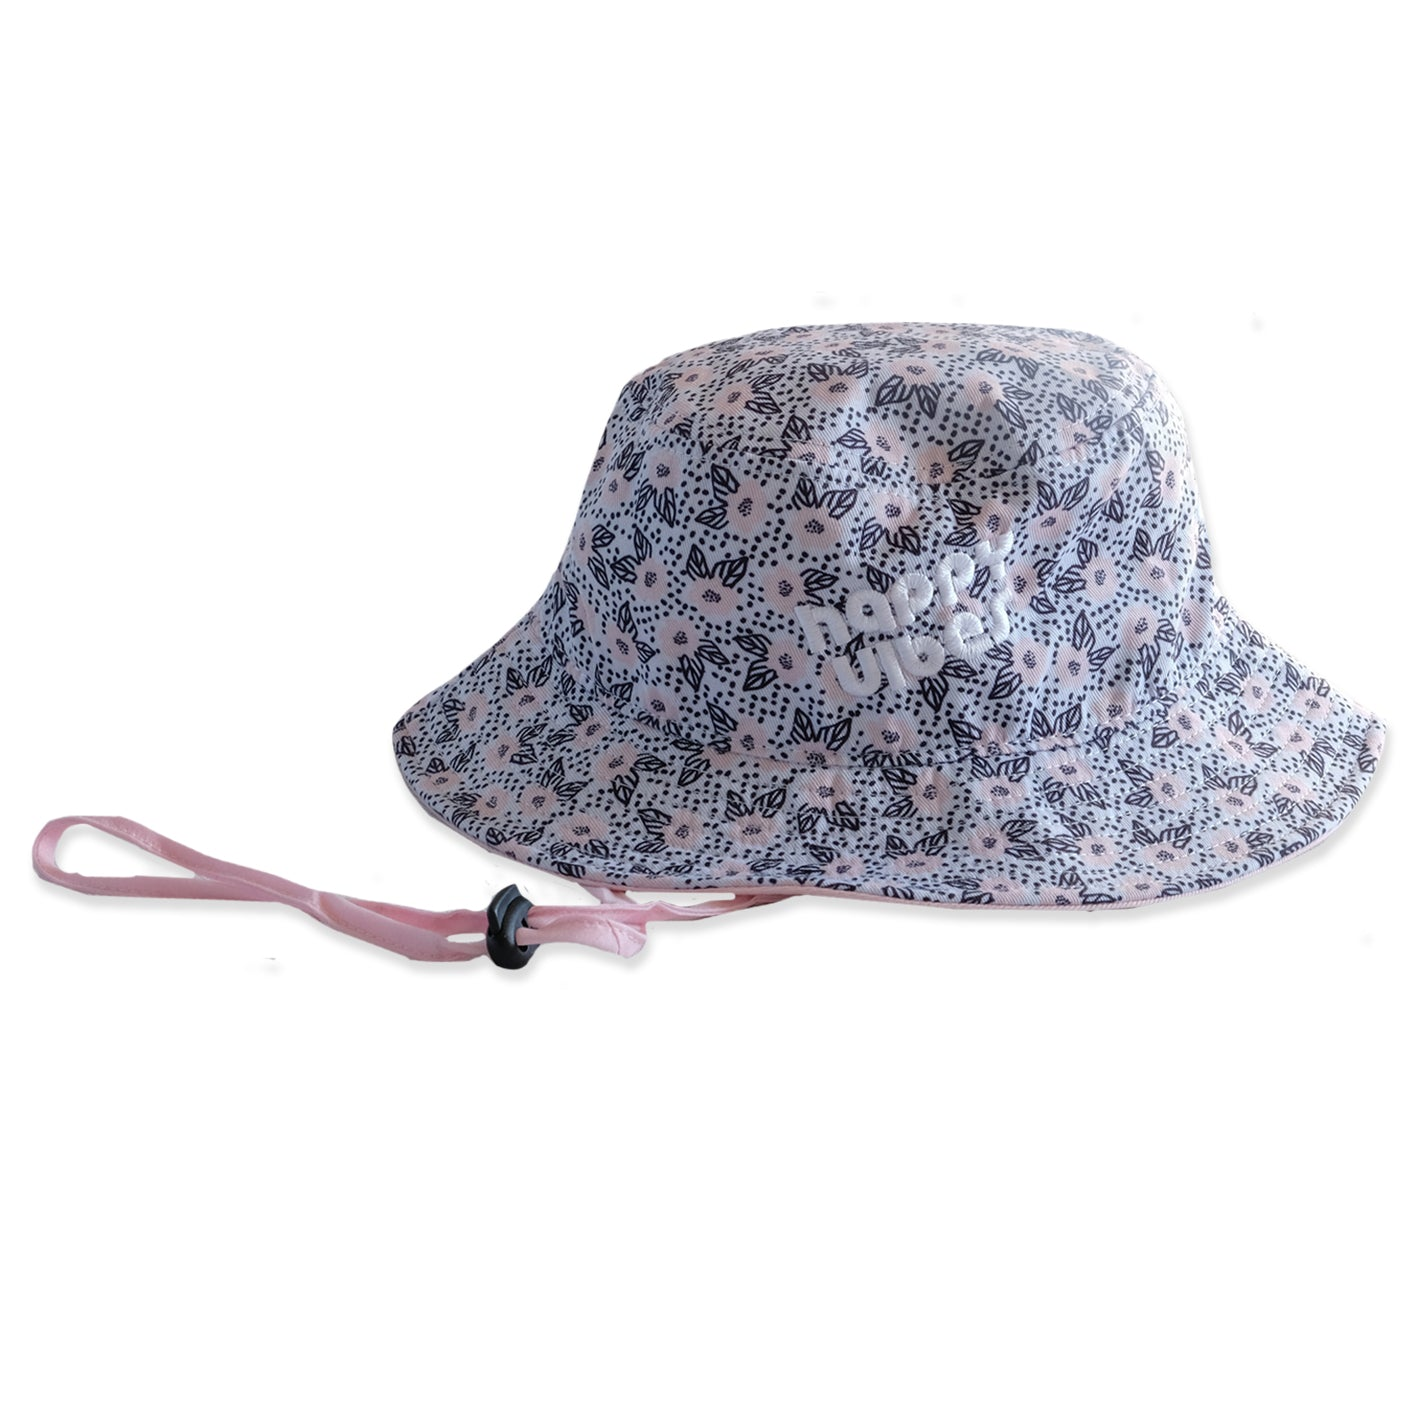 Happy Vibes Bucket Hat Floral from hello stranger kidswear